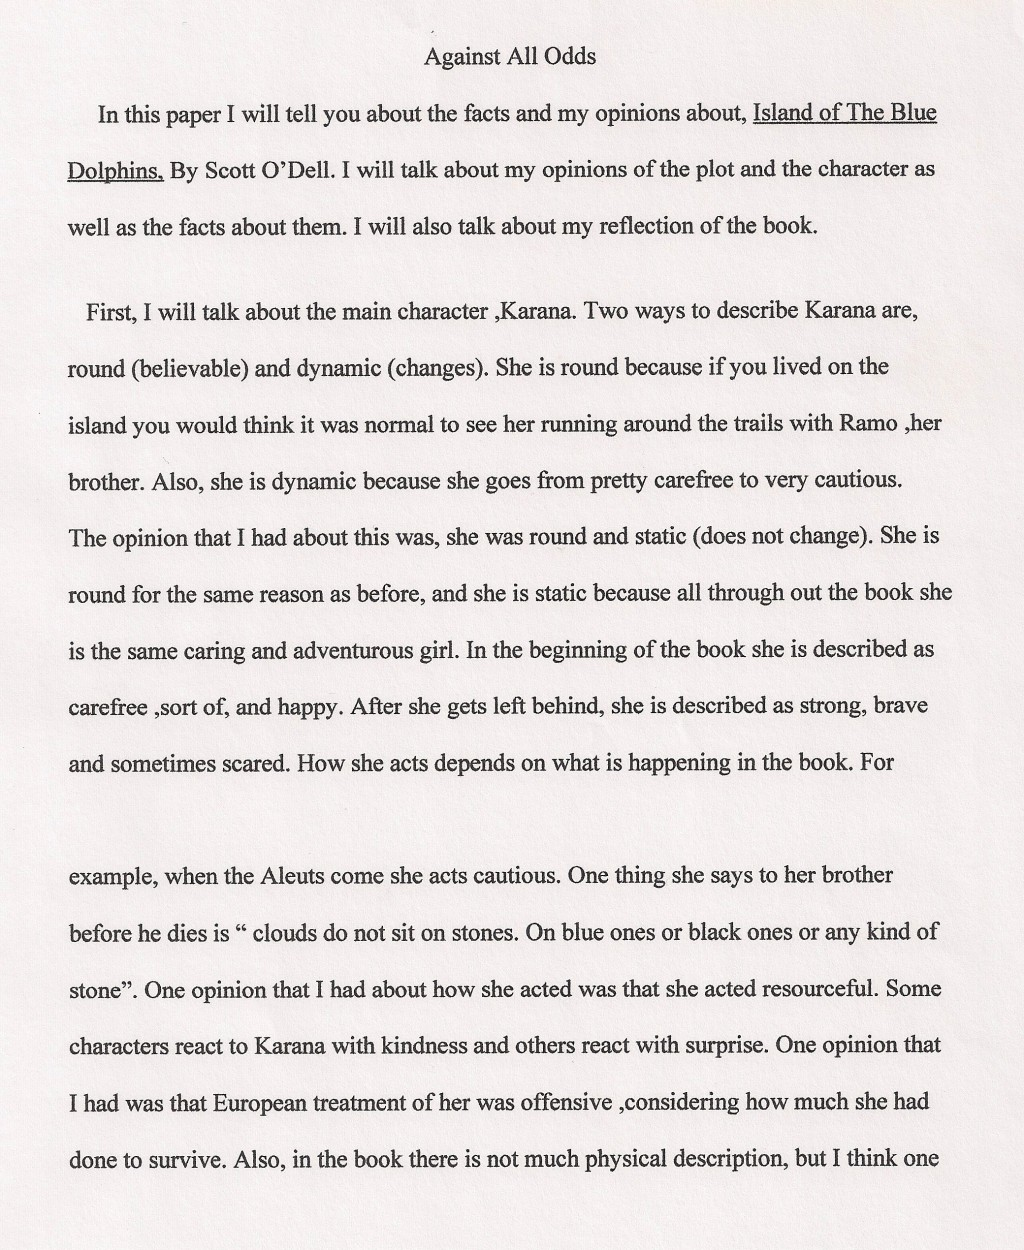 004 Essay Example 6th Grade Examples Against All Odds Fantastic Narrative Writing Literary Large